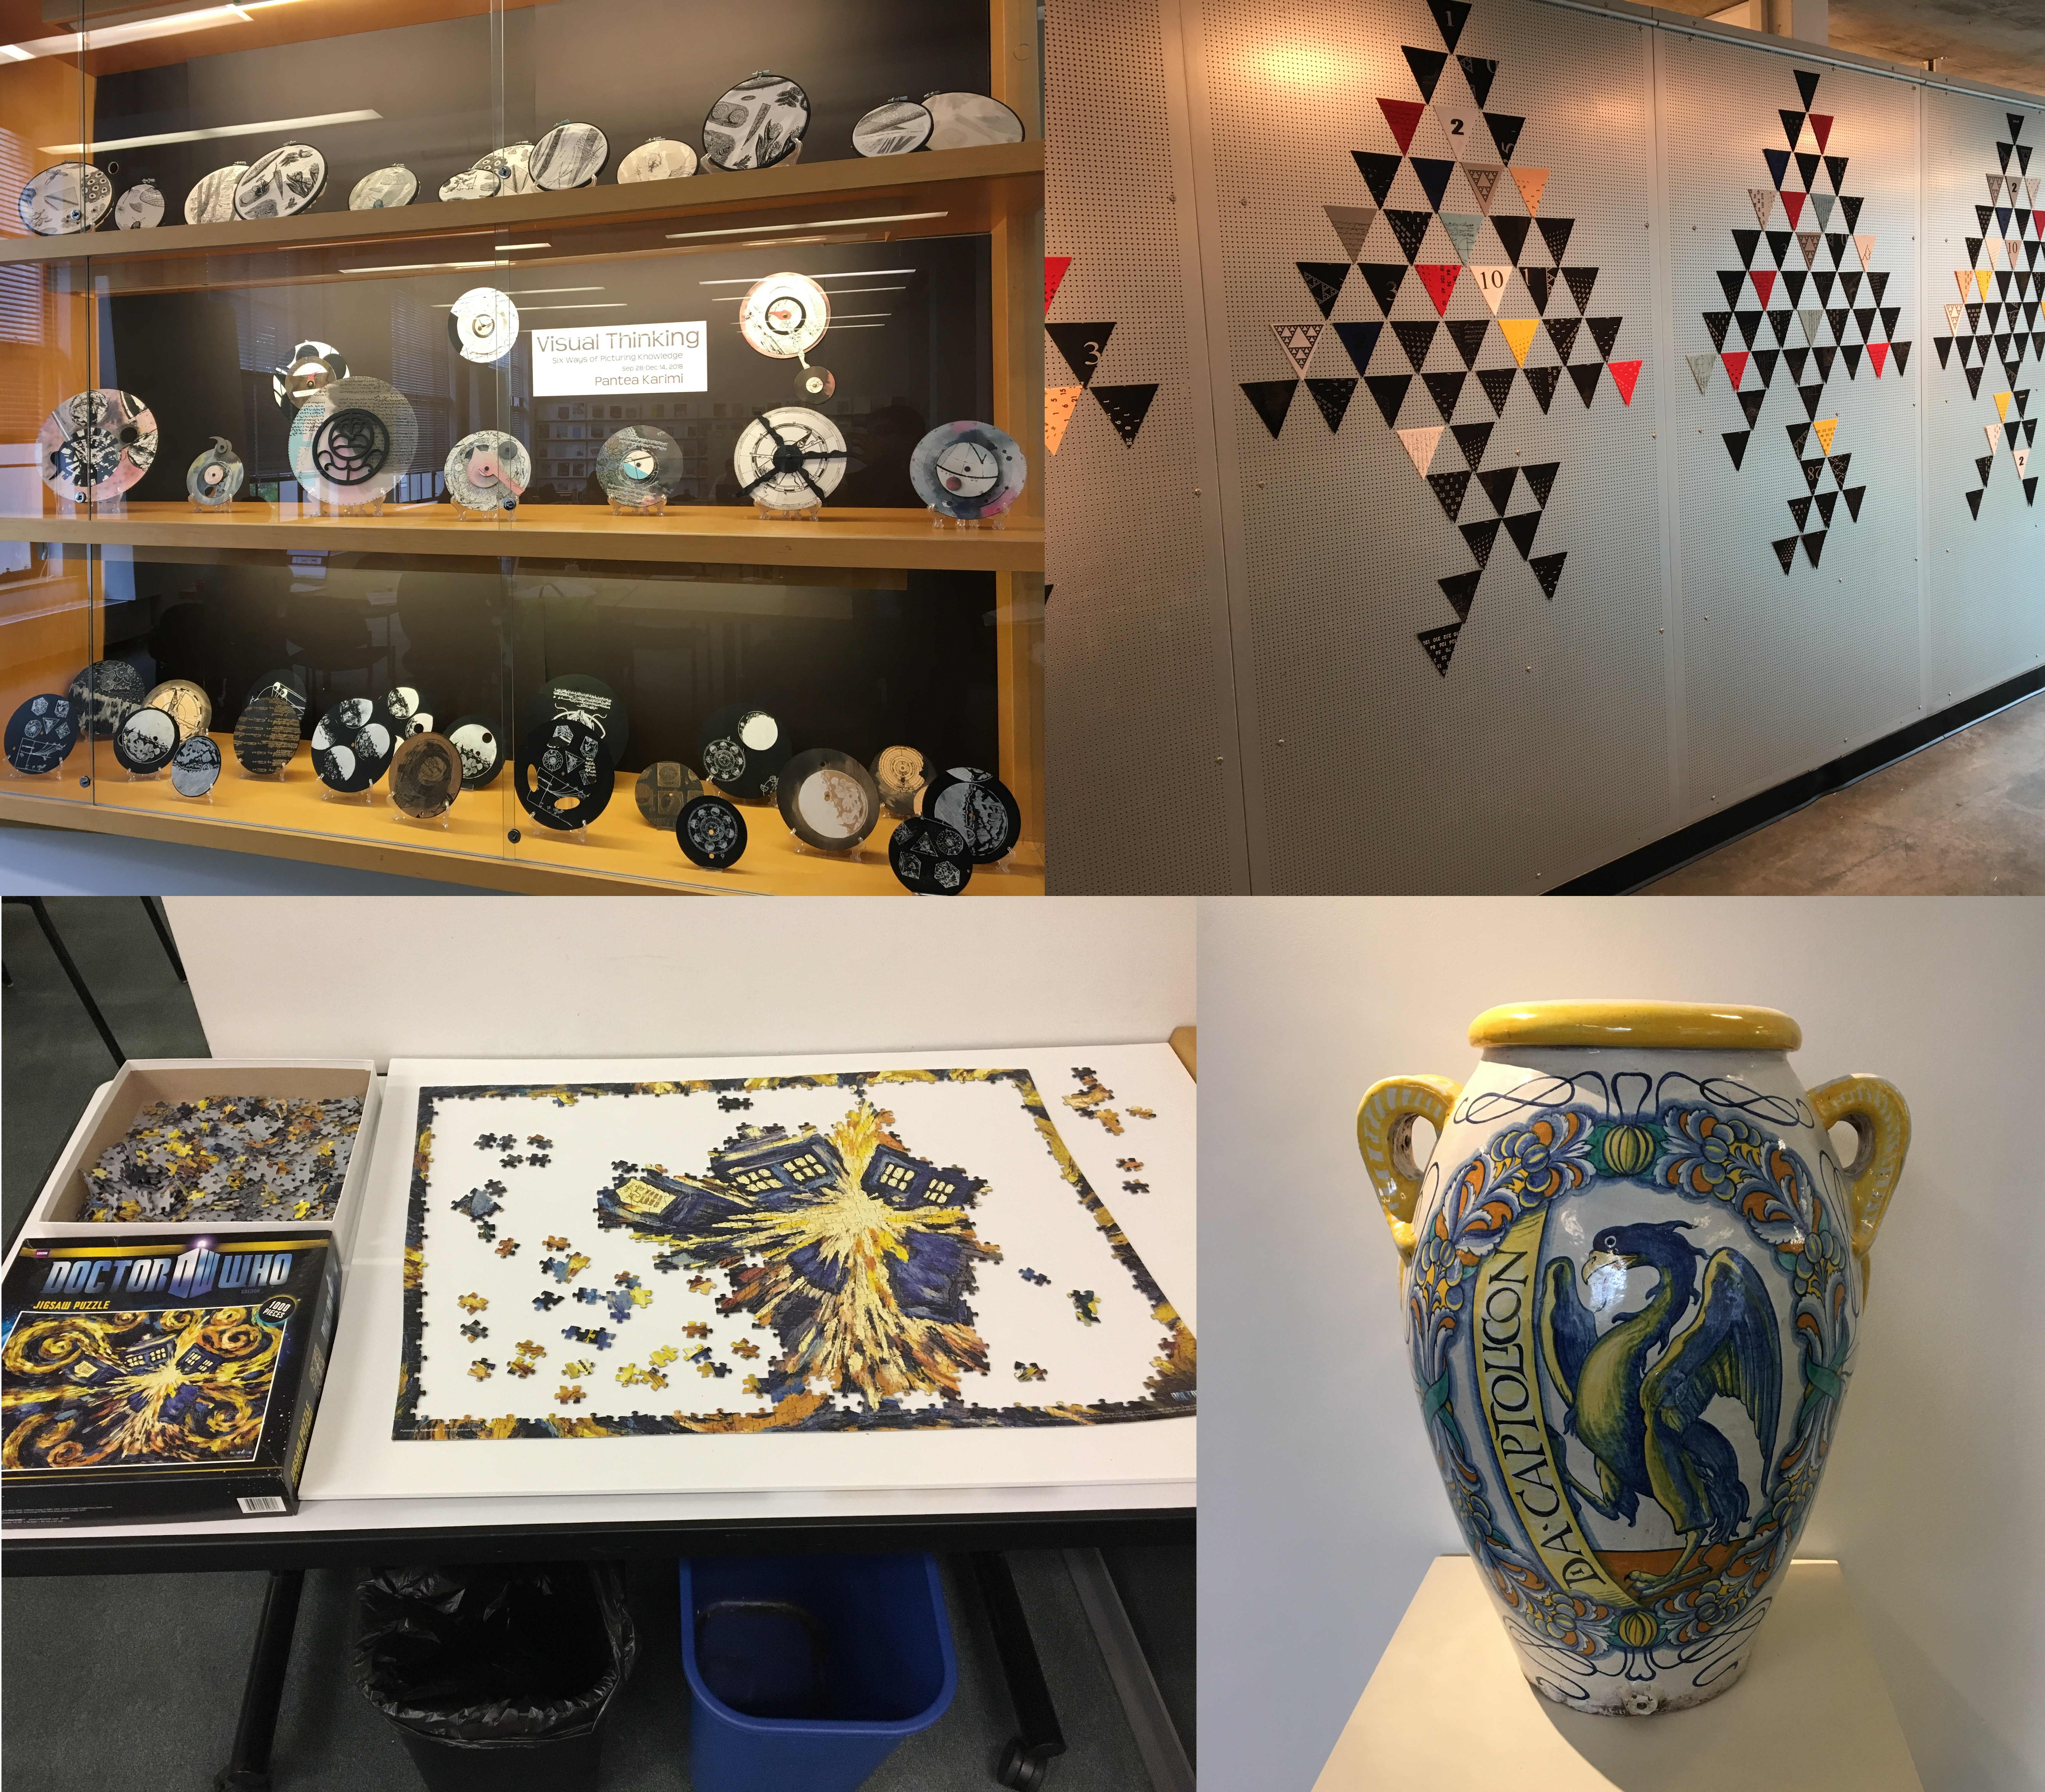 A set of four photos. Top left: a cabinet full of decorative plates. Top right: A wall with colourful triangles arranged in geometric patterns. Bottom left: An unfinished Doctor Who puzzle. Bottom right: A large white vase painted with yellow and blue patterns and what looks to be a winged dragon.